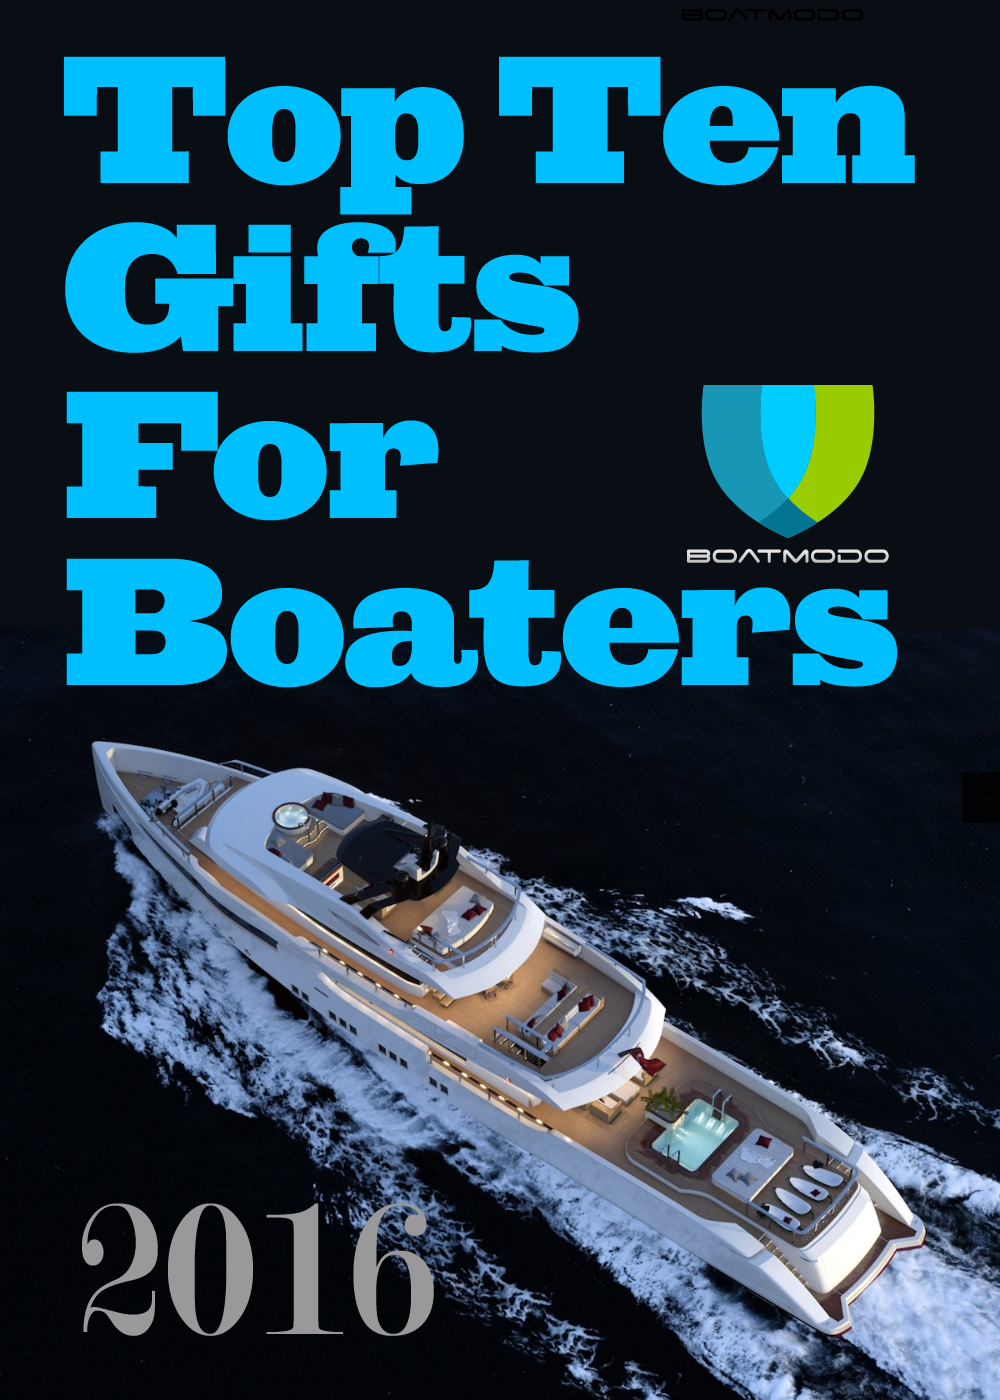 10 Gifts For Boaters